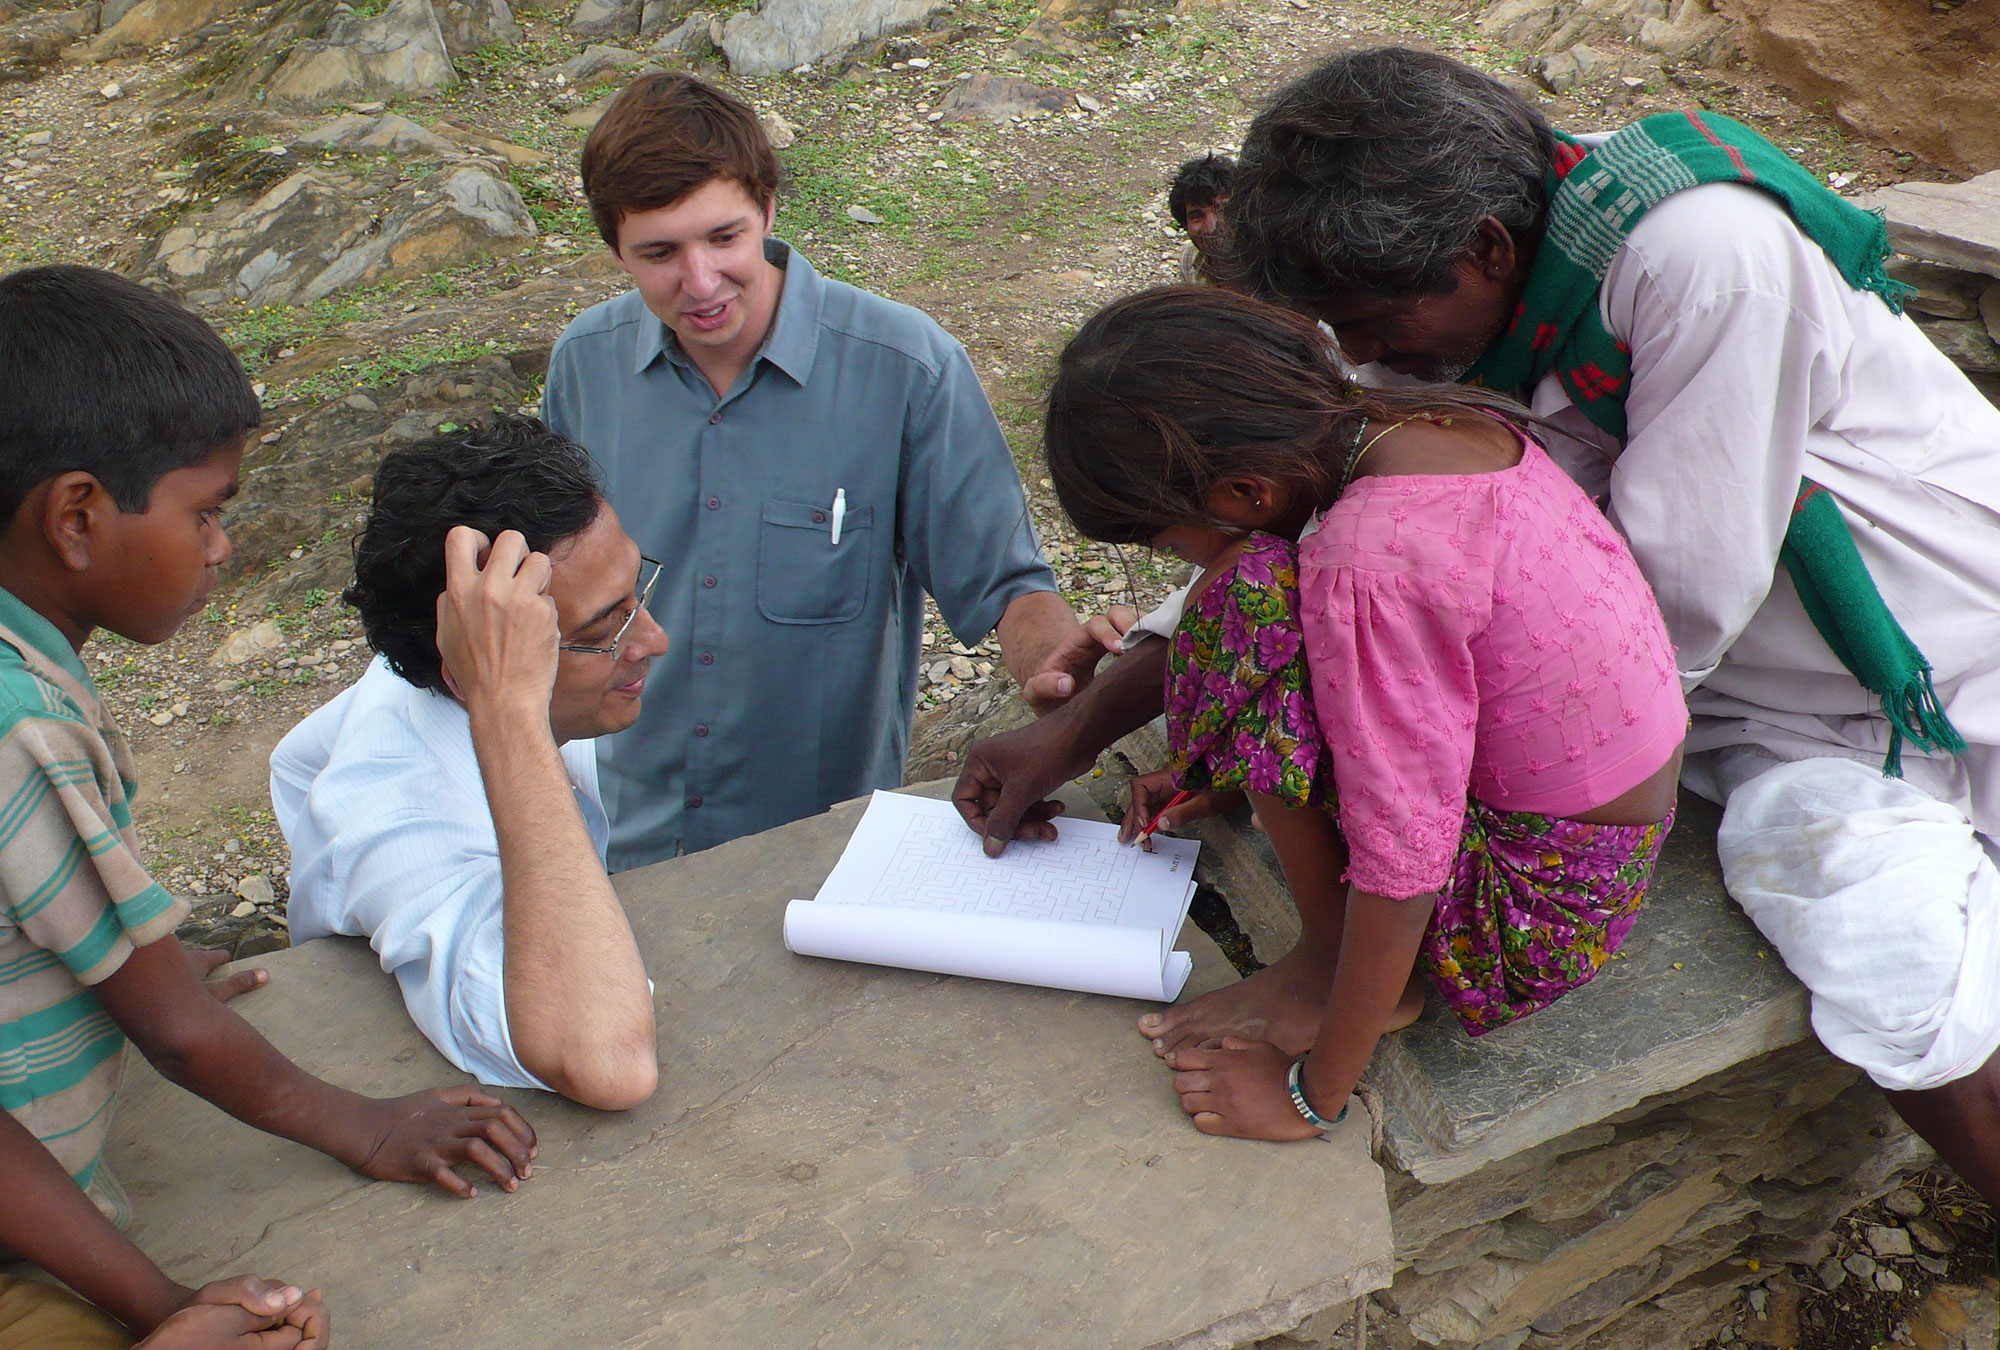 J-PAL staff help a young girl solve a maze exercise in India.